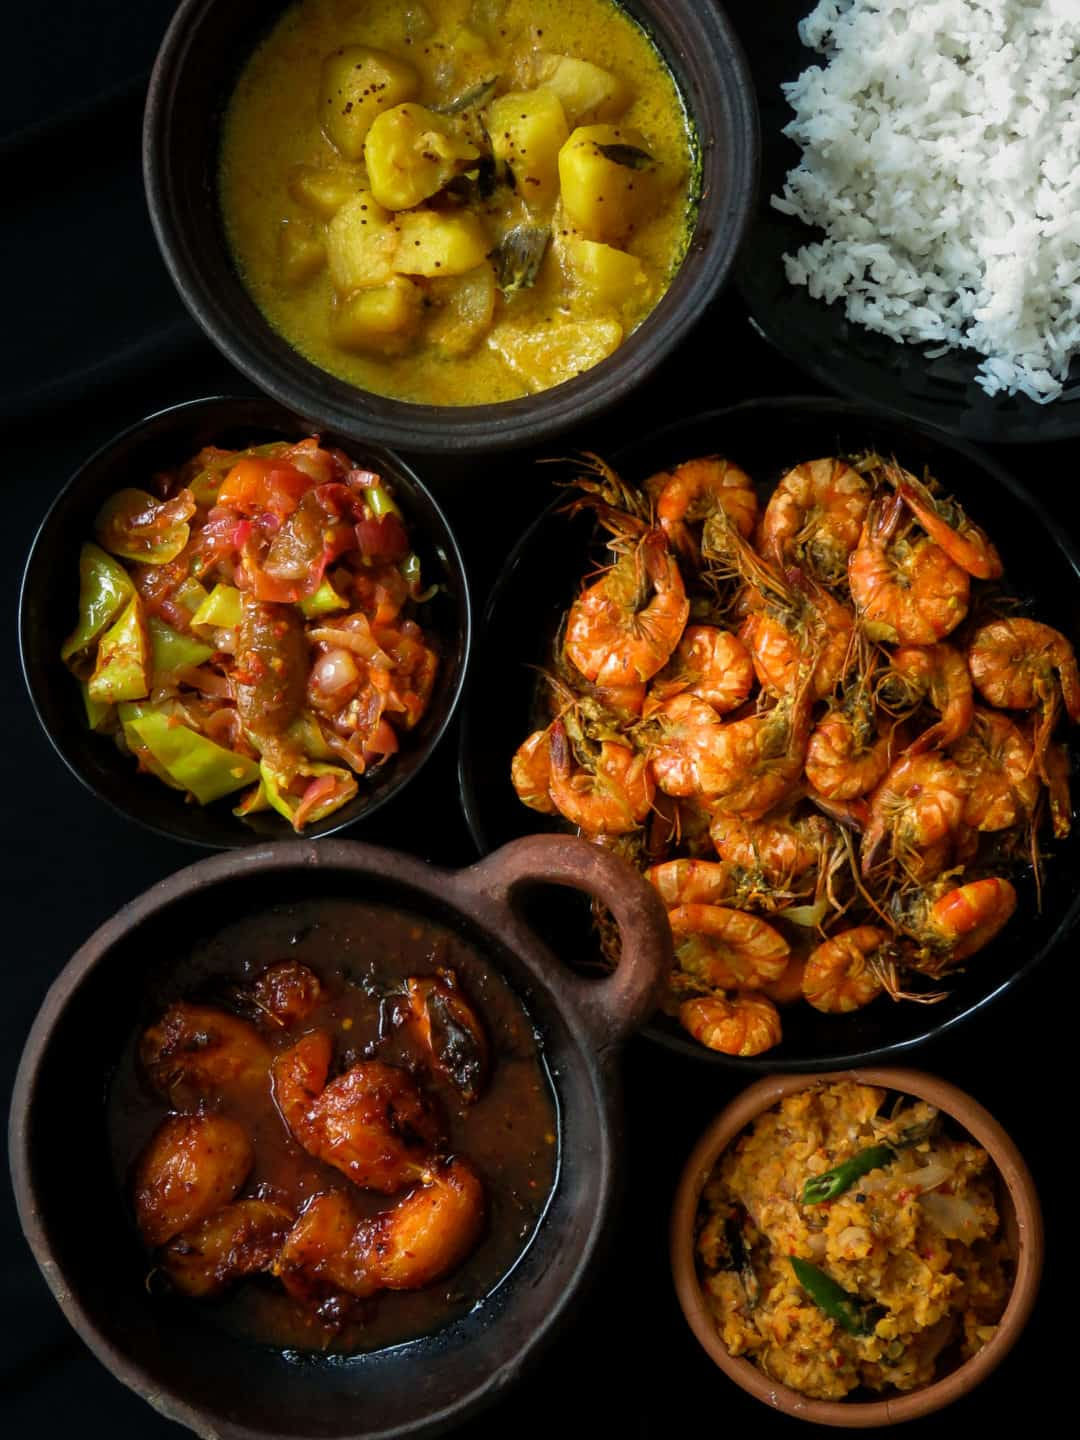 Sri Lankan meal plan 2- Rice with a prawn curry cooked in coconut milk, tempered-dry spicy dhal, capsicum with pickled lime sambol, a creamy potato milk curry and a sweet and spicy ambarella curry makes up this five dish menu.-islandsmile.org